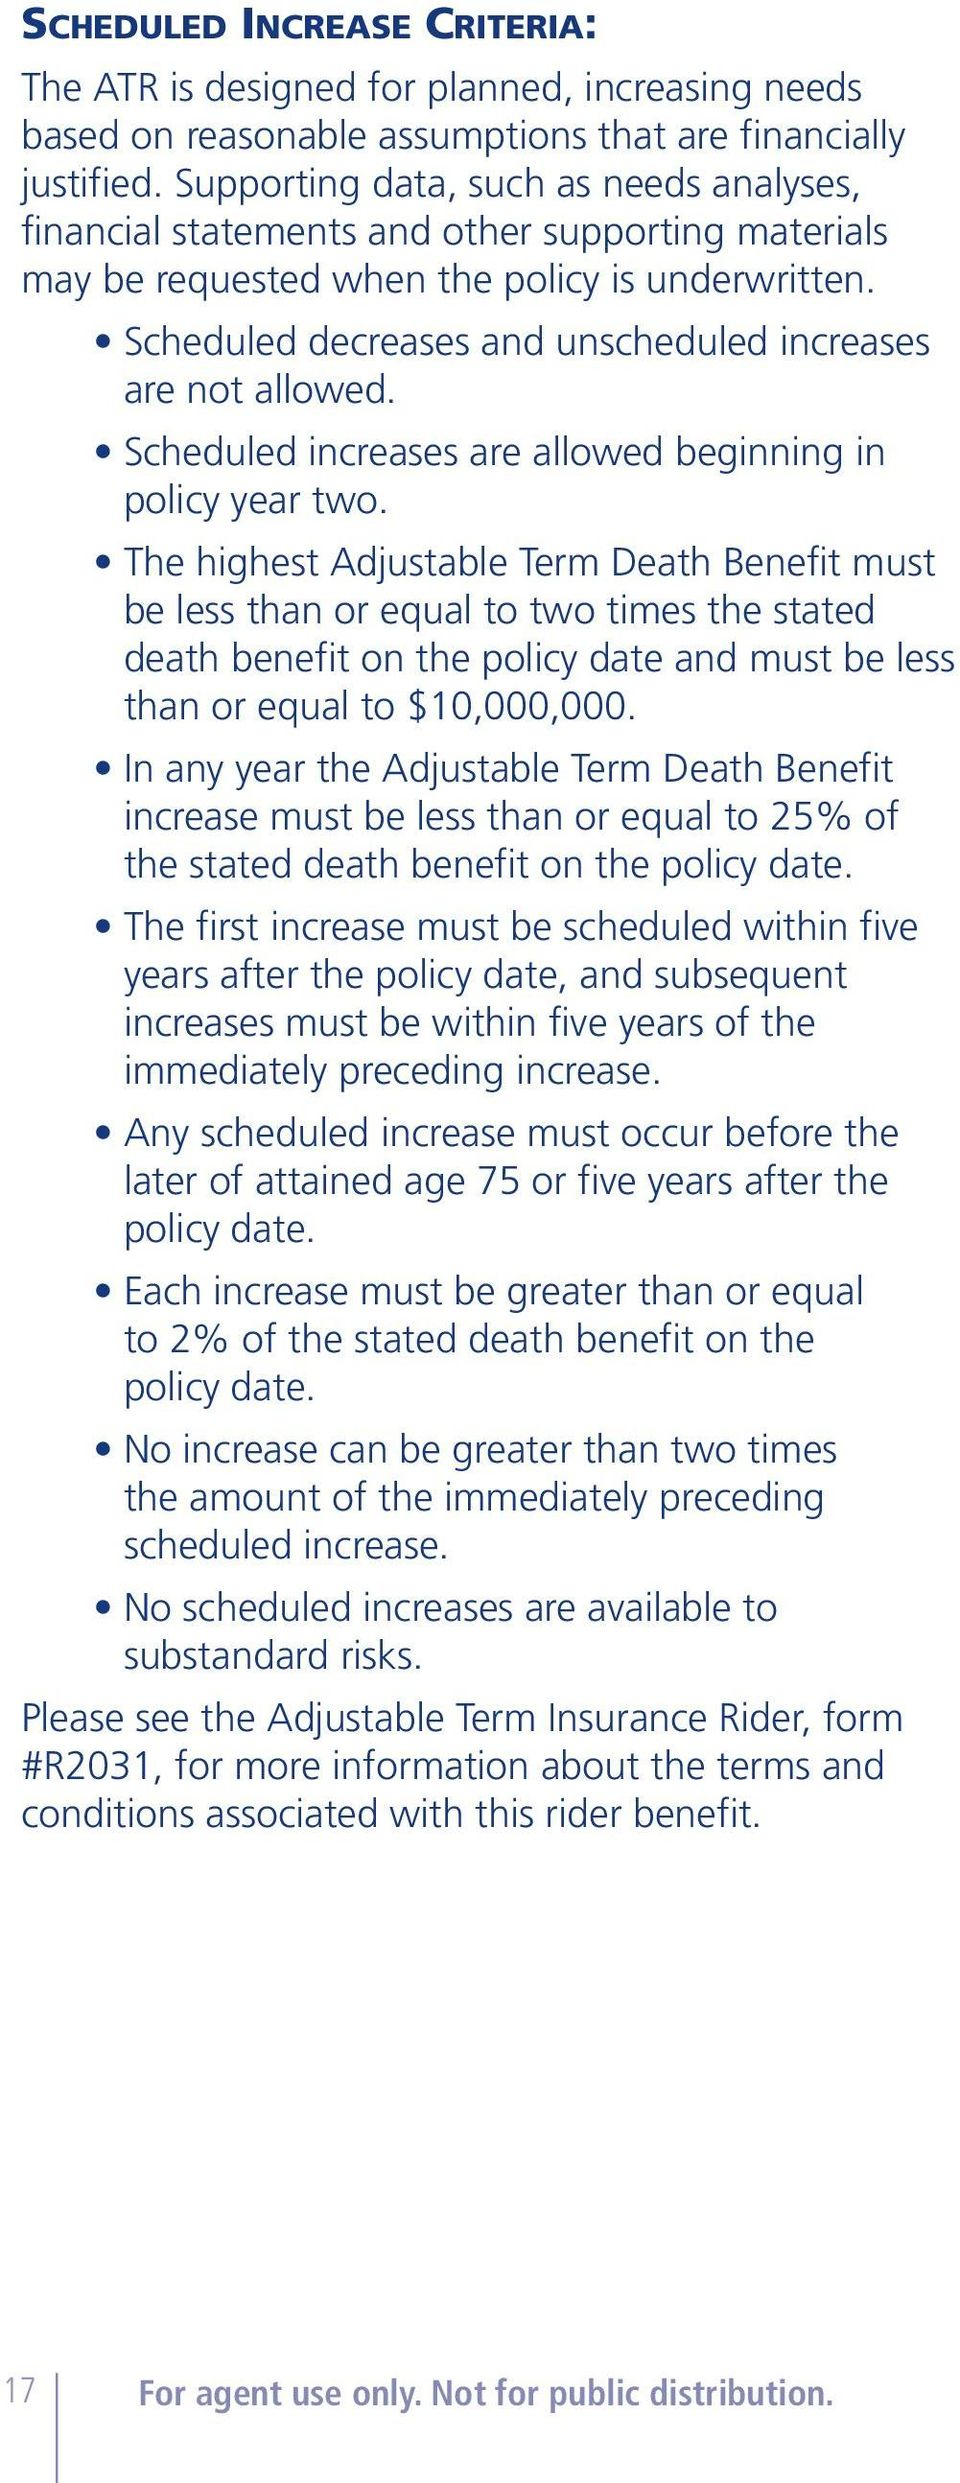 Scheduled decreases and unscheduled increases are not allowed. Scheduled increases are allowed beginning in policy year two.